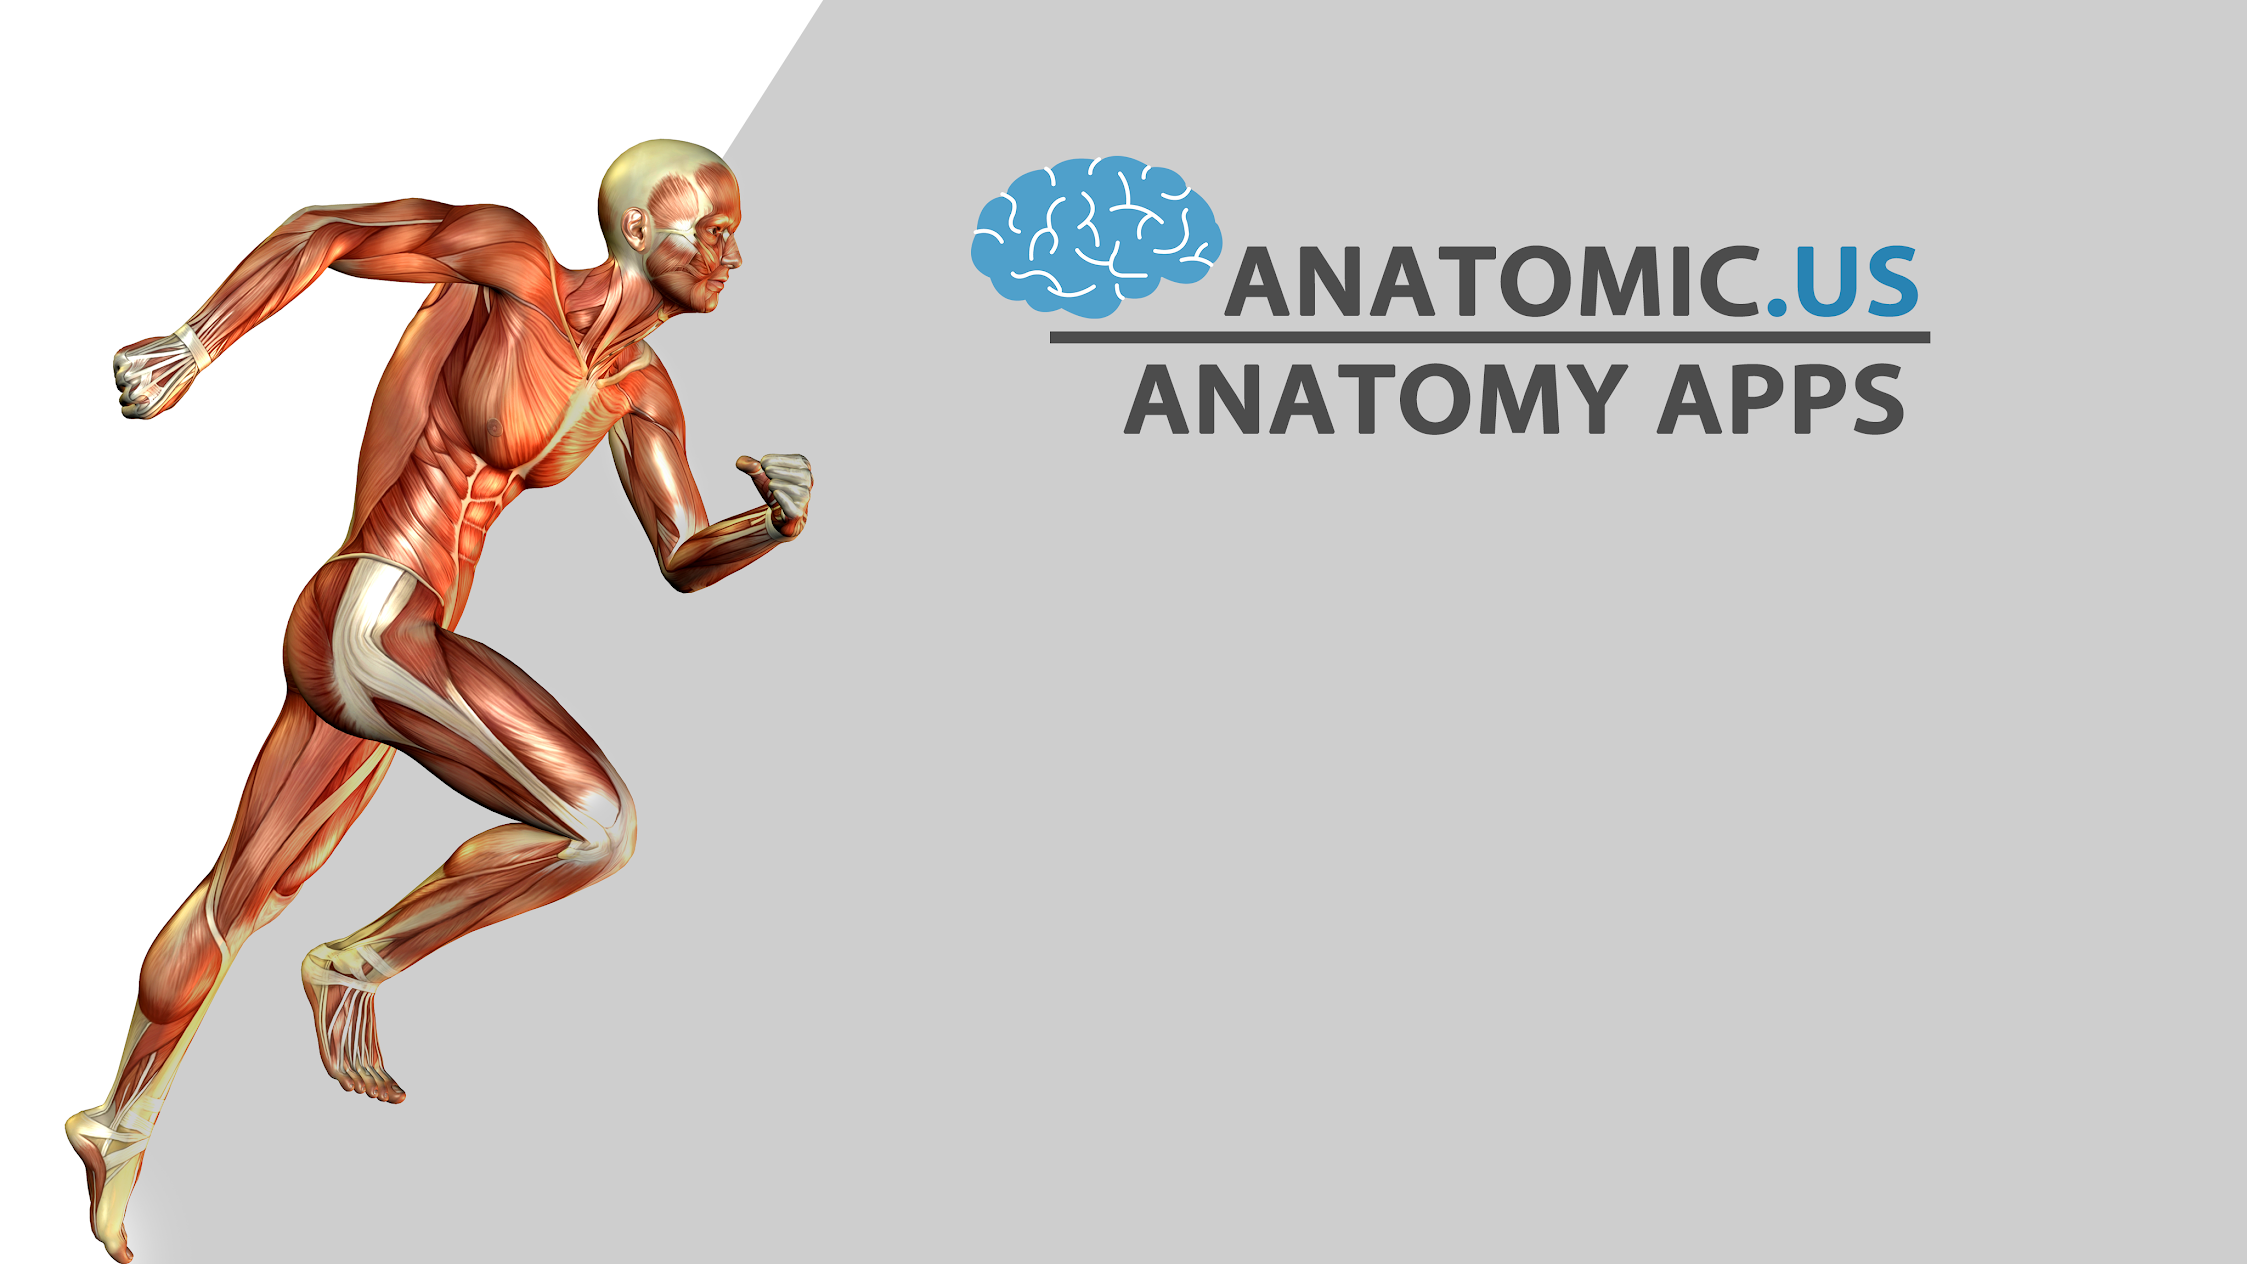 Android Apps By Anatomicus Anatomy Apps On Google Play